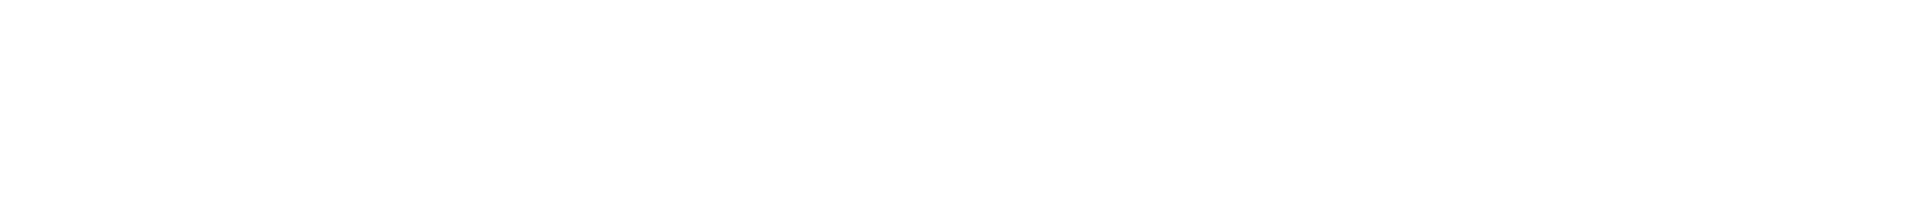 Co.Station Events   Microsoft for Startups is coming to Co.Station